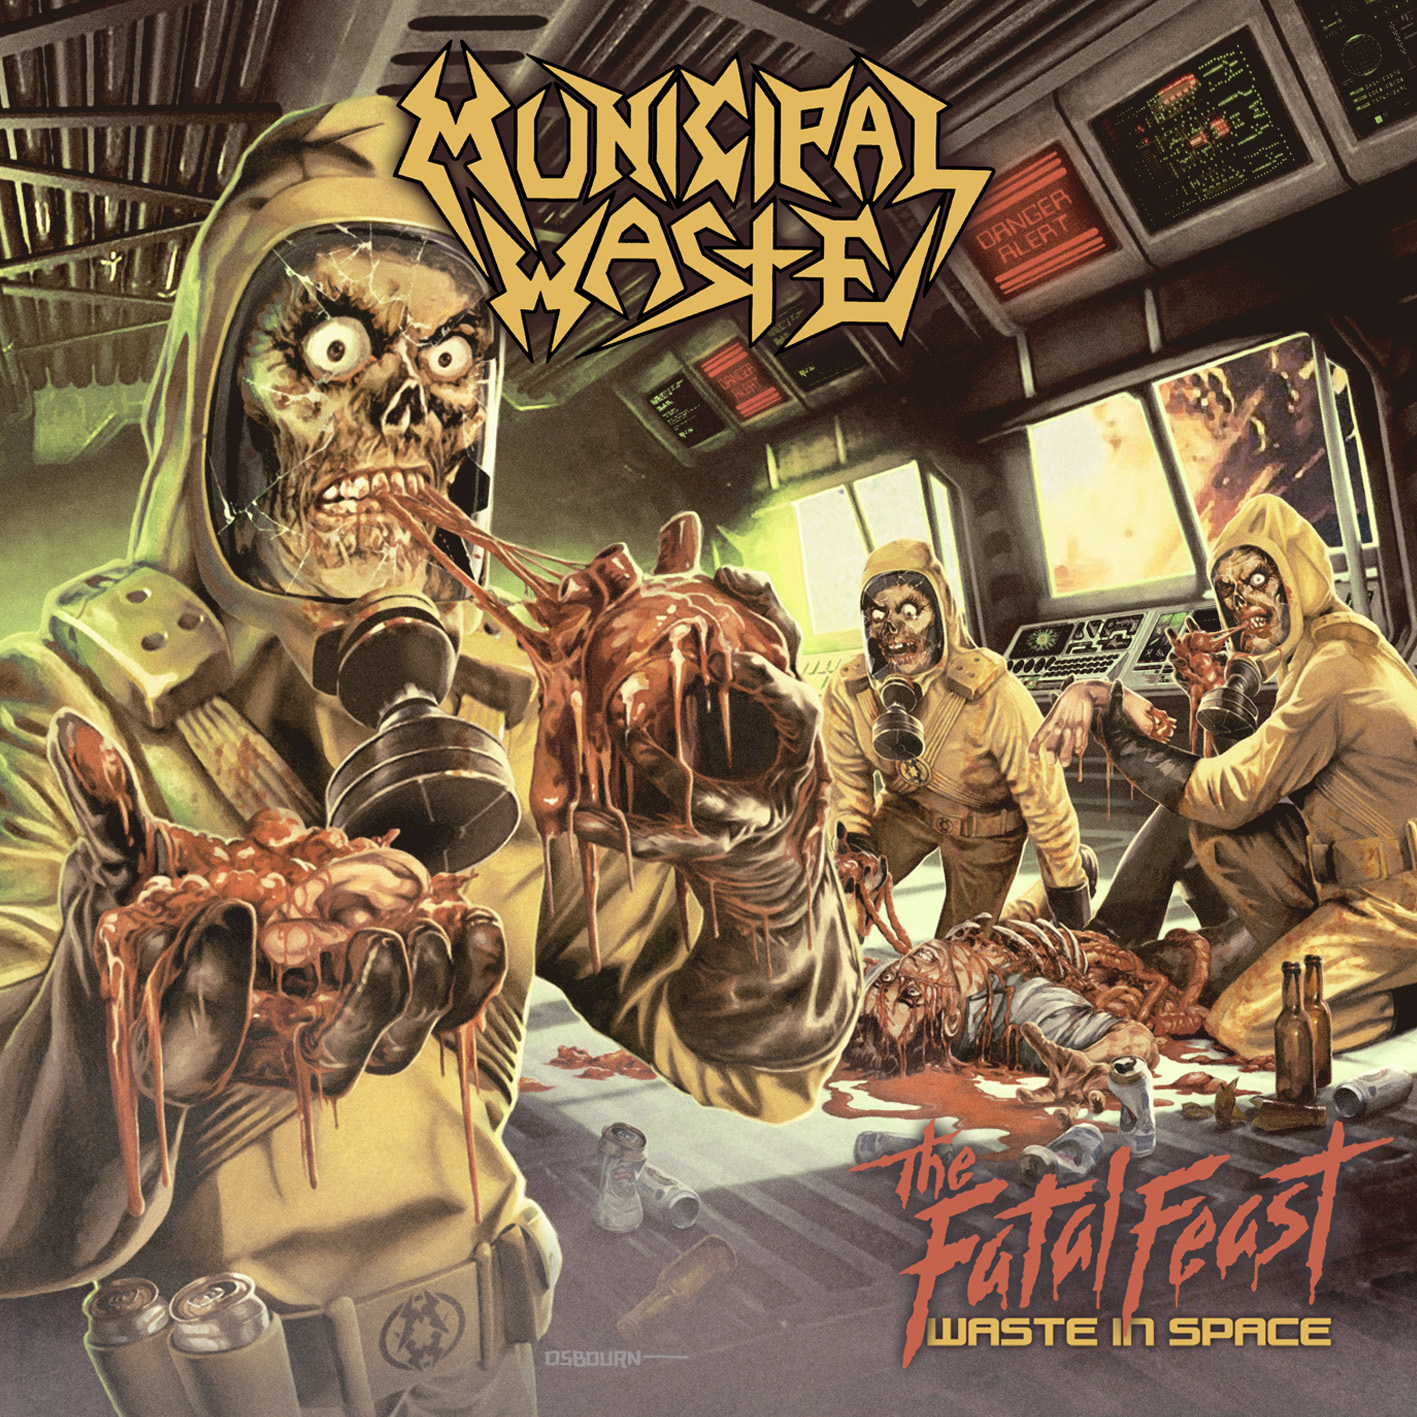 Municipal Waste – The Fatal Feast (Waste in Space) Review